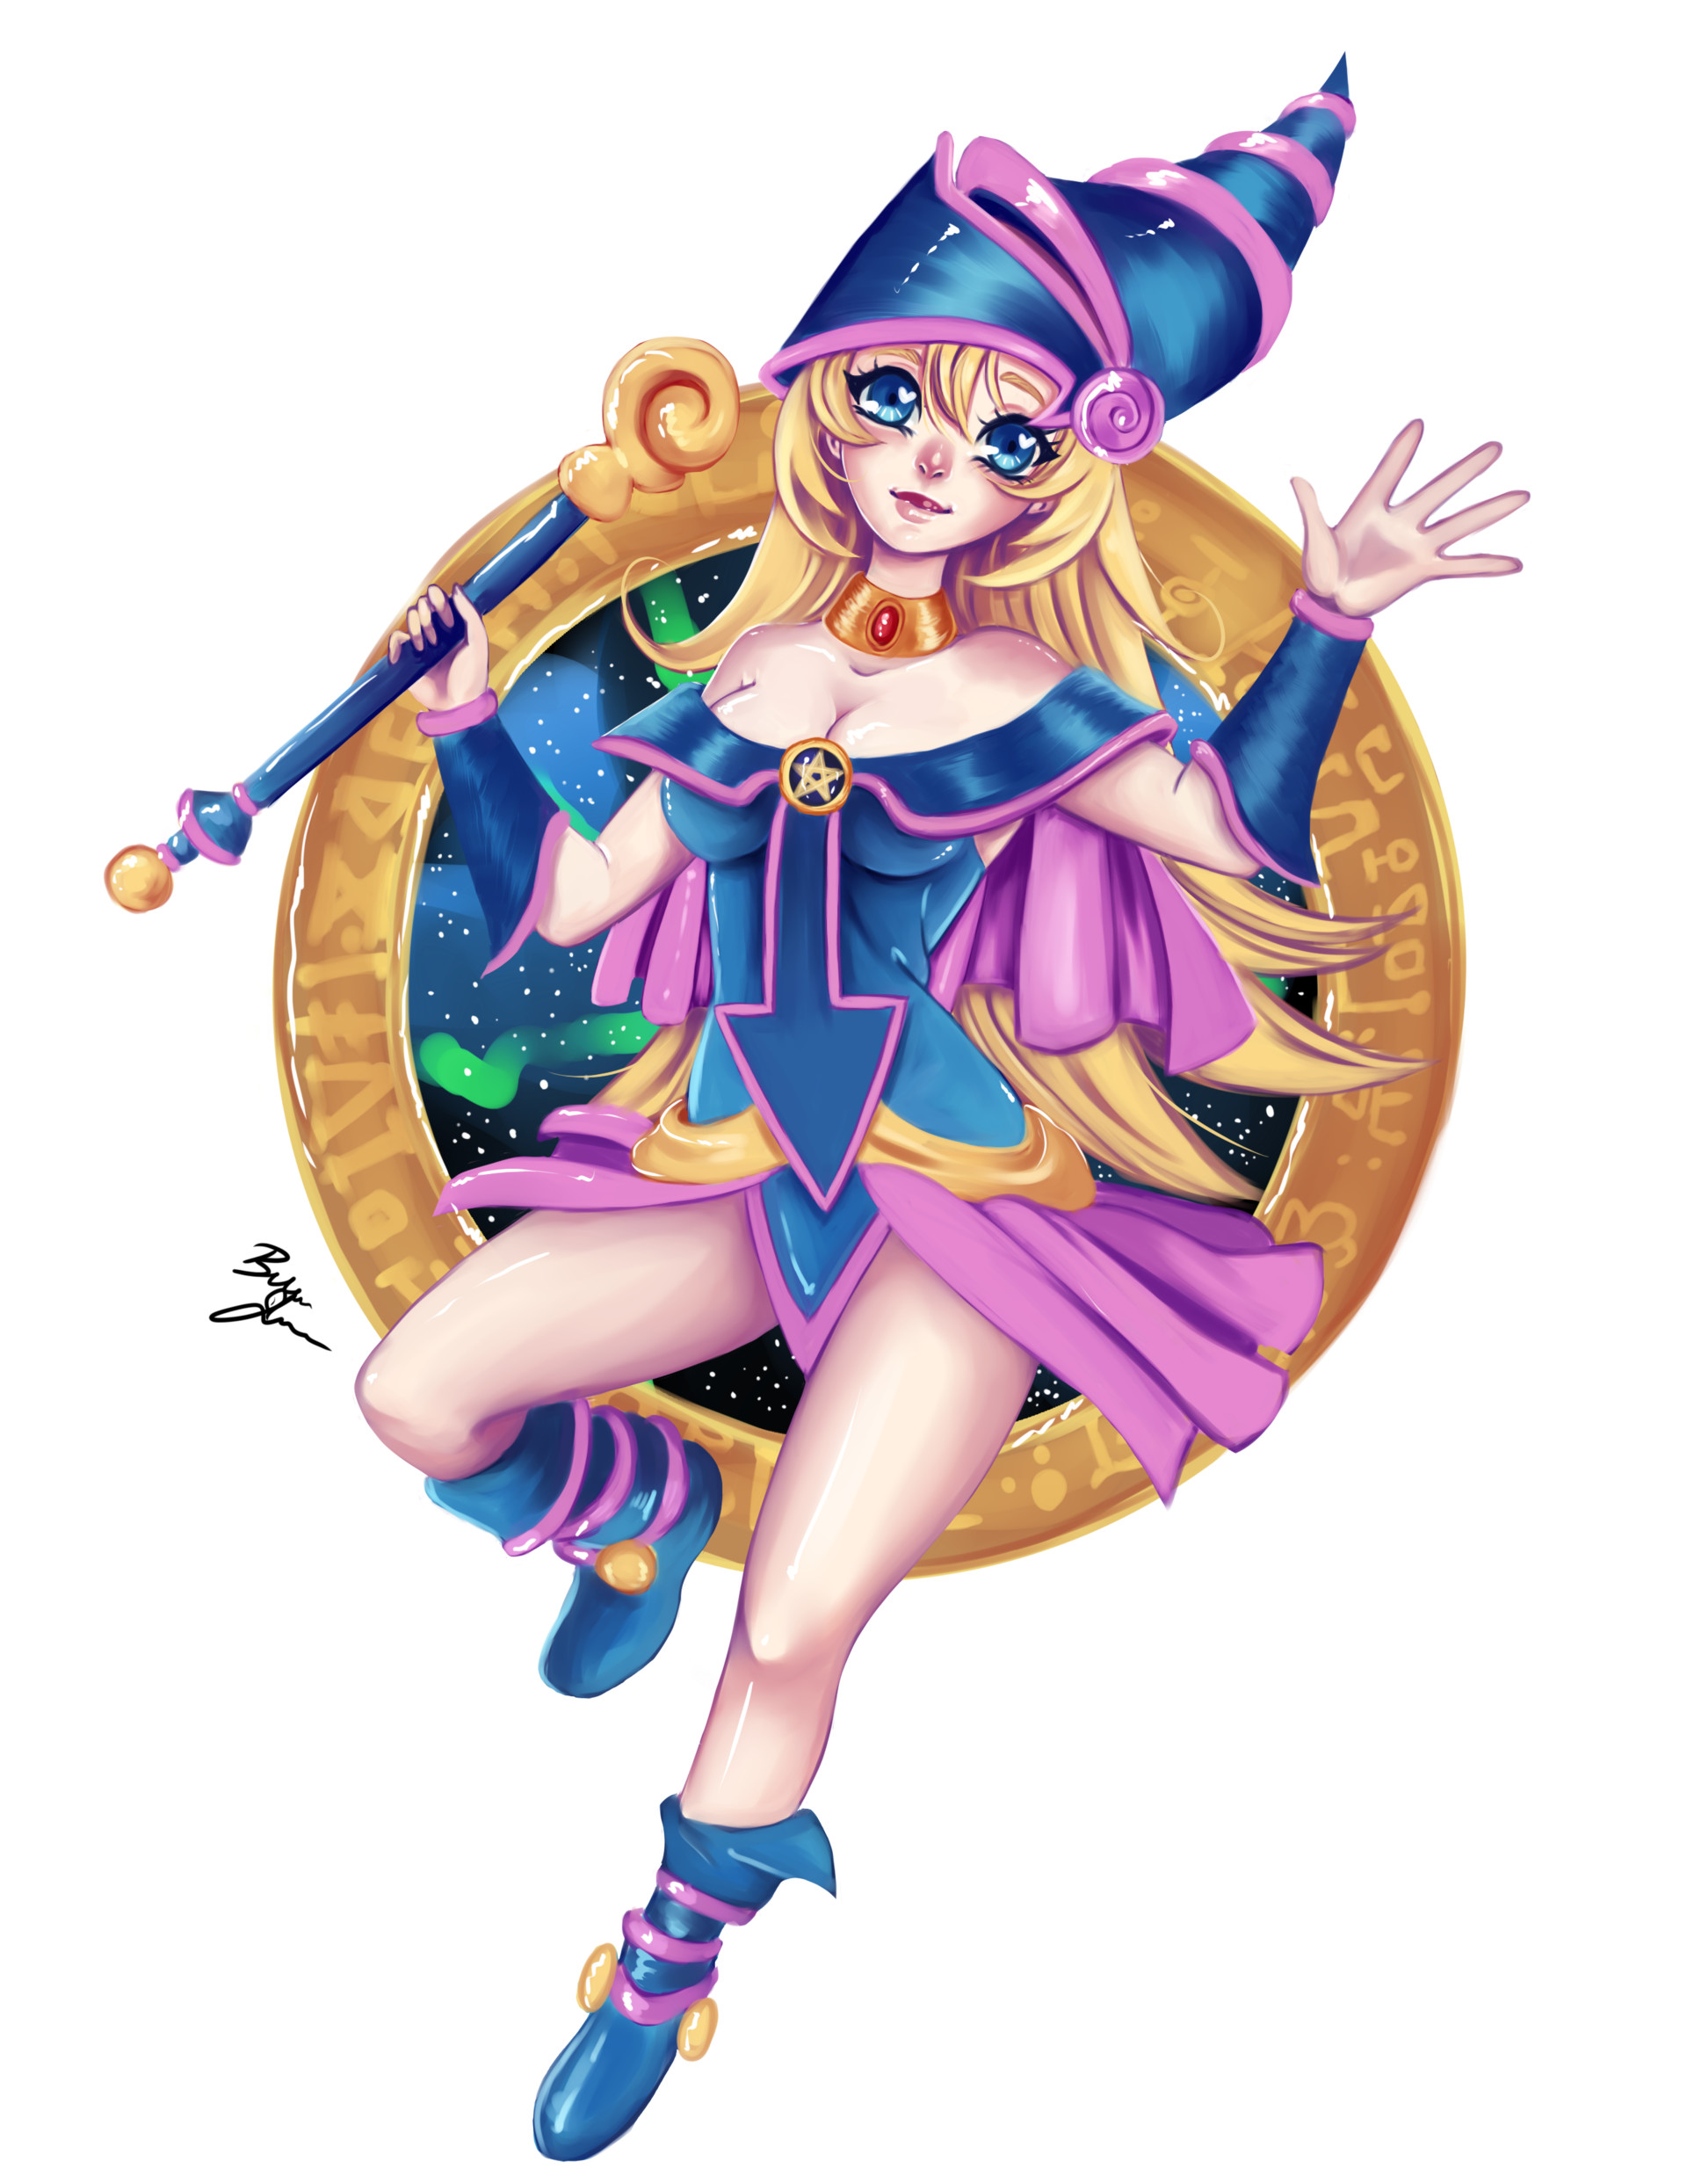 Your dark magician girl art for that